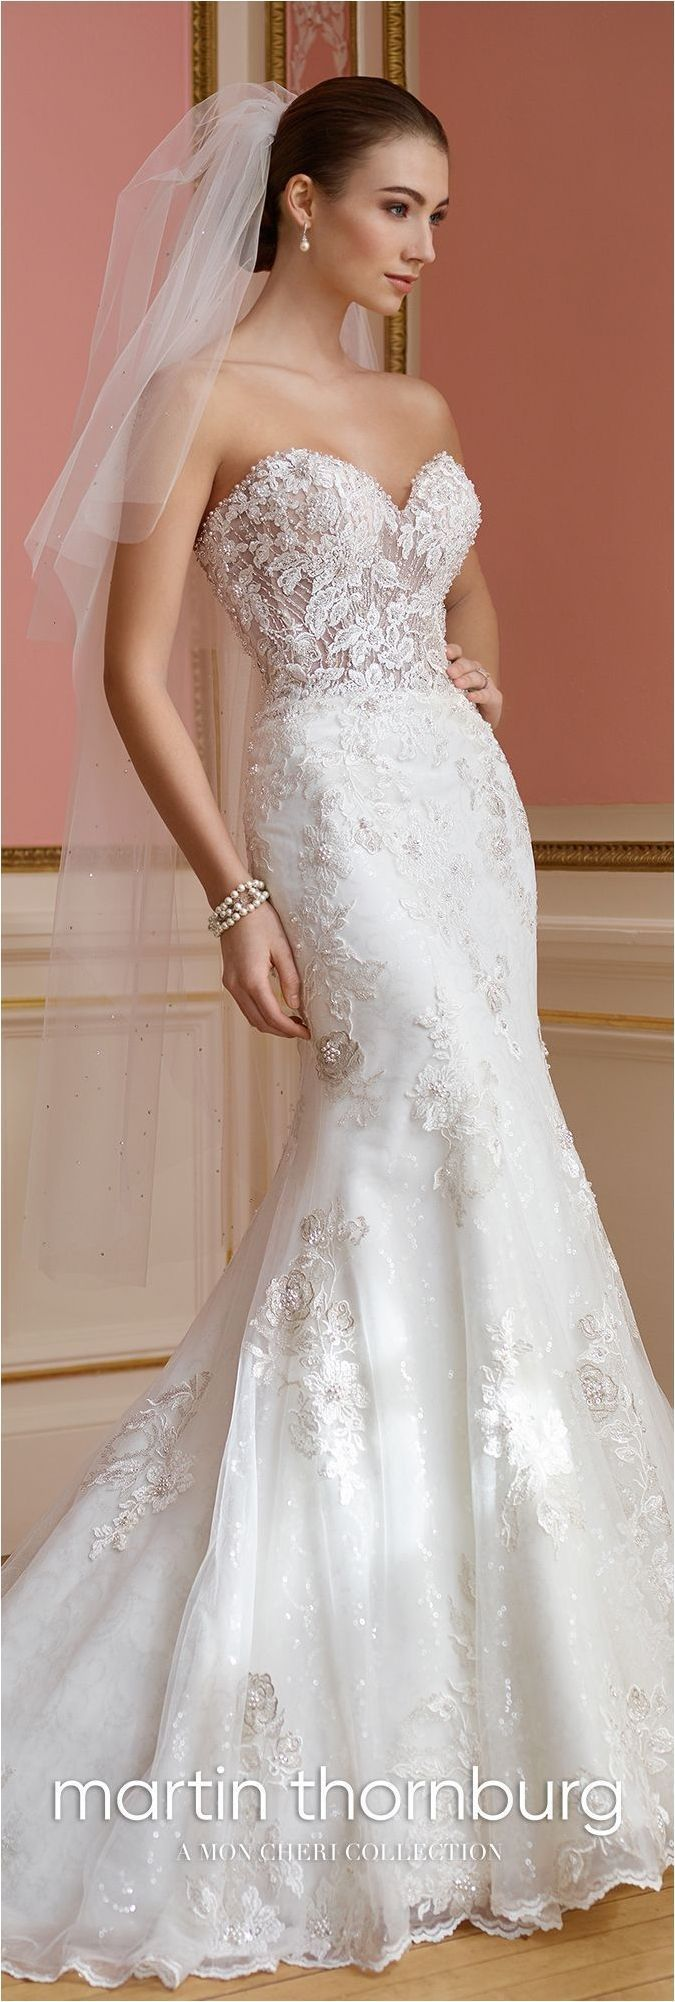 Nice Lace Sweetheart Wedding Dresses For Your Spring Wedding https